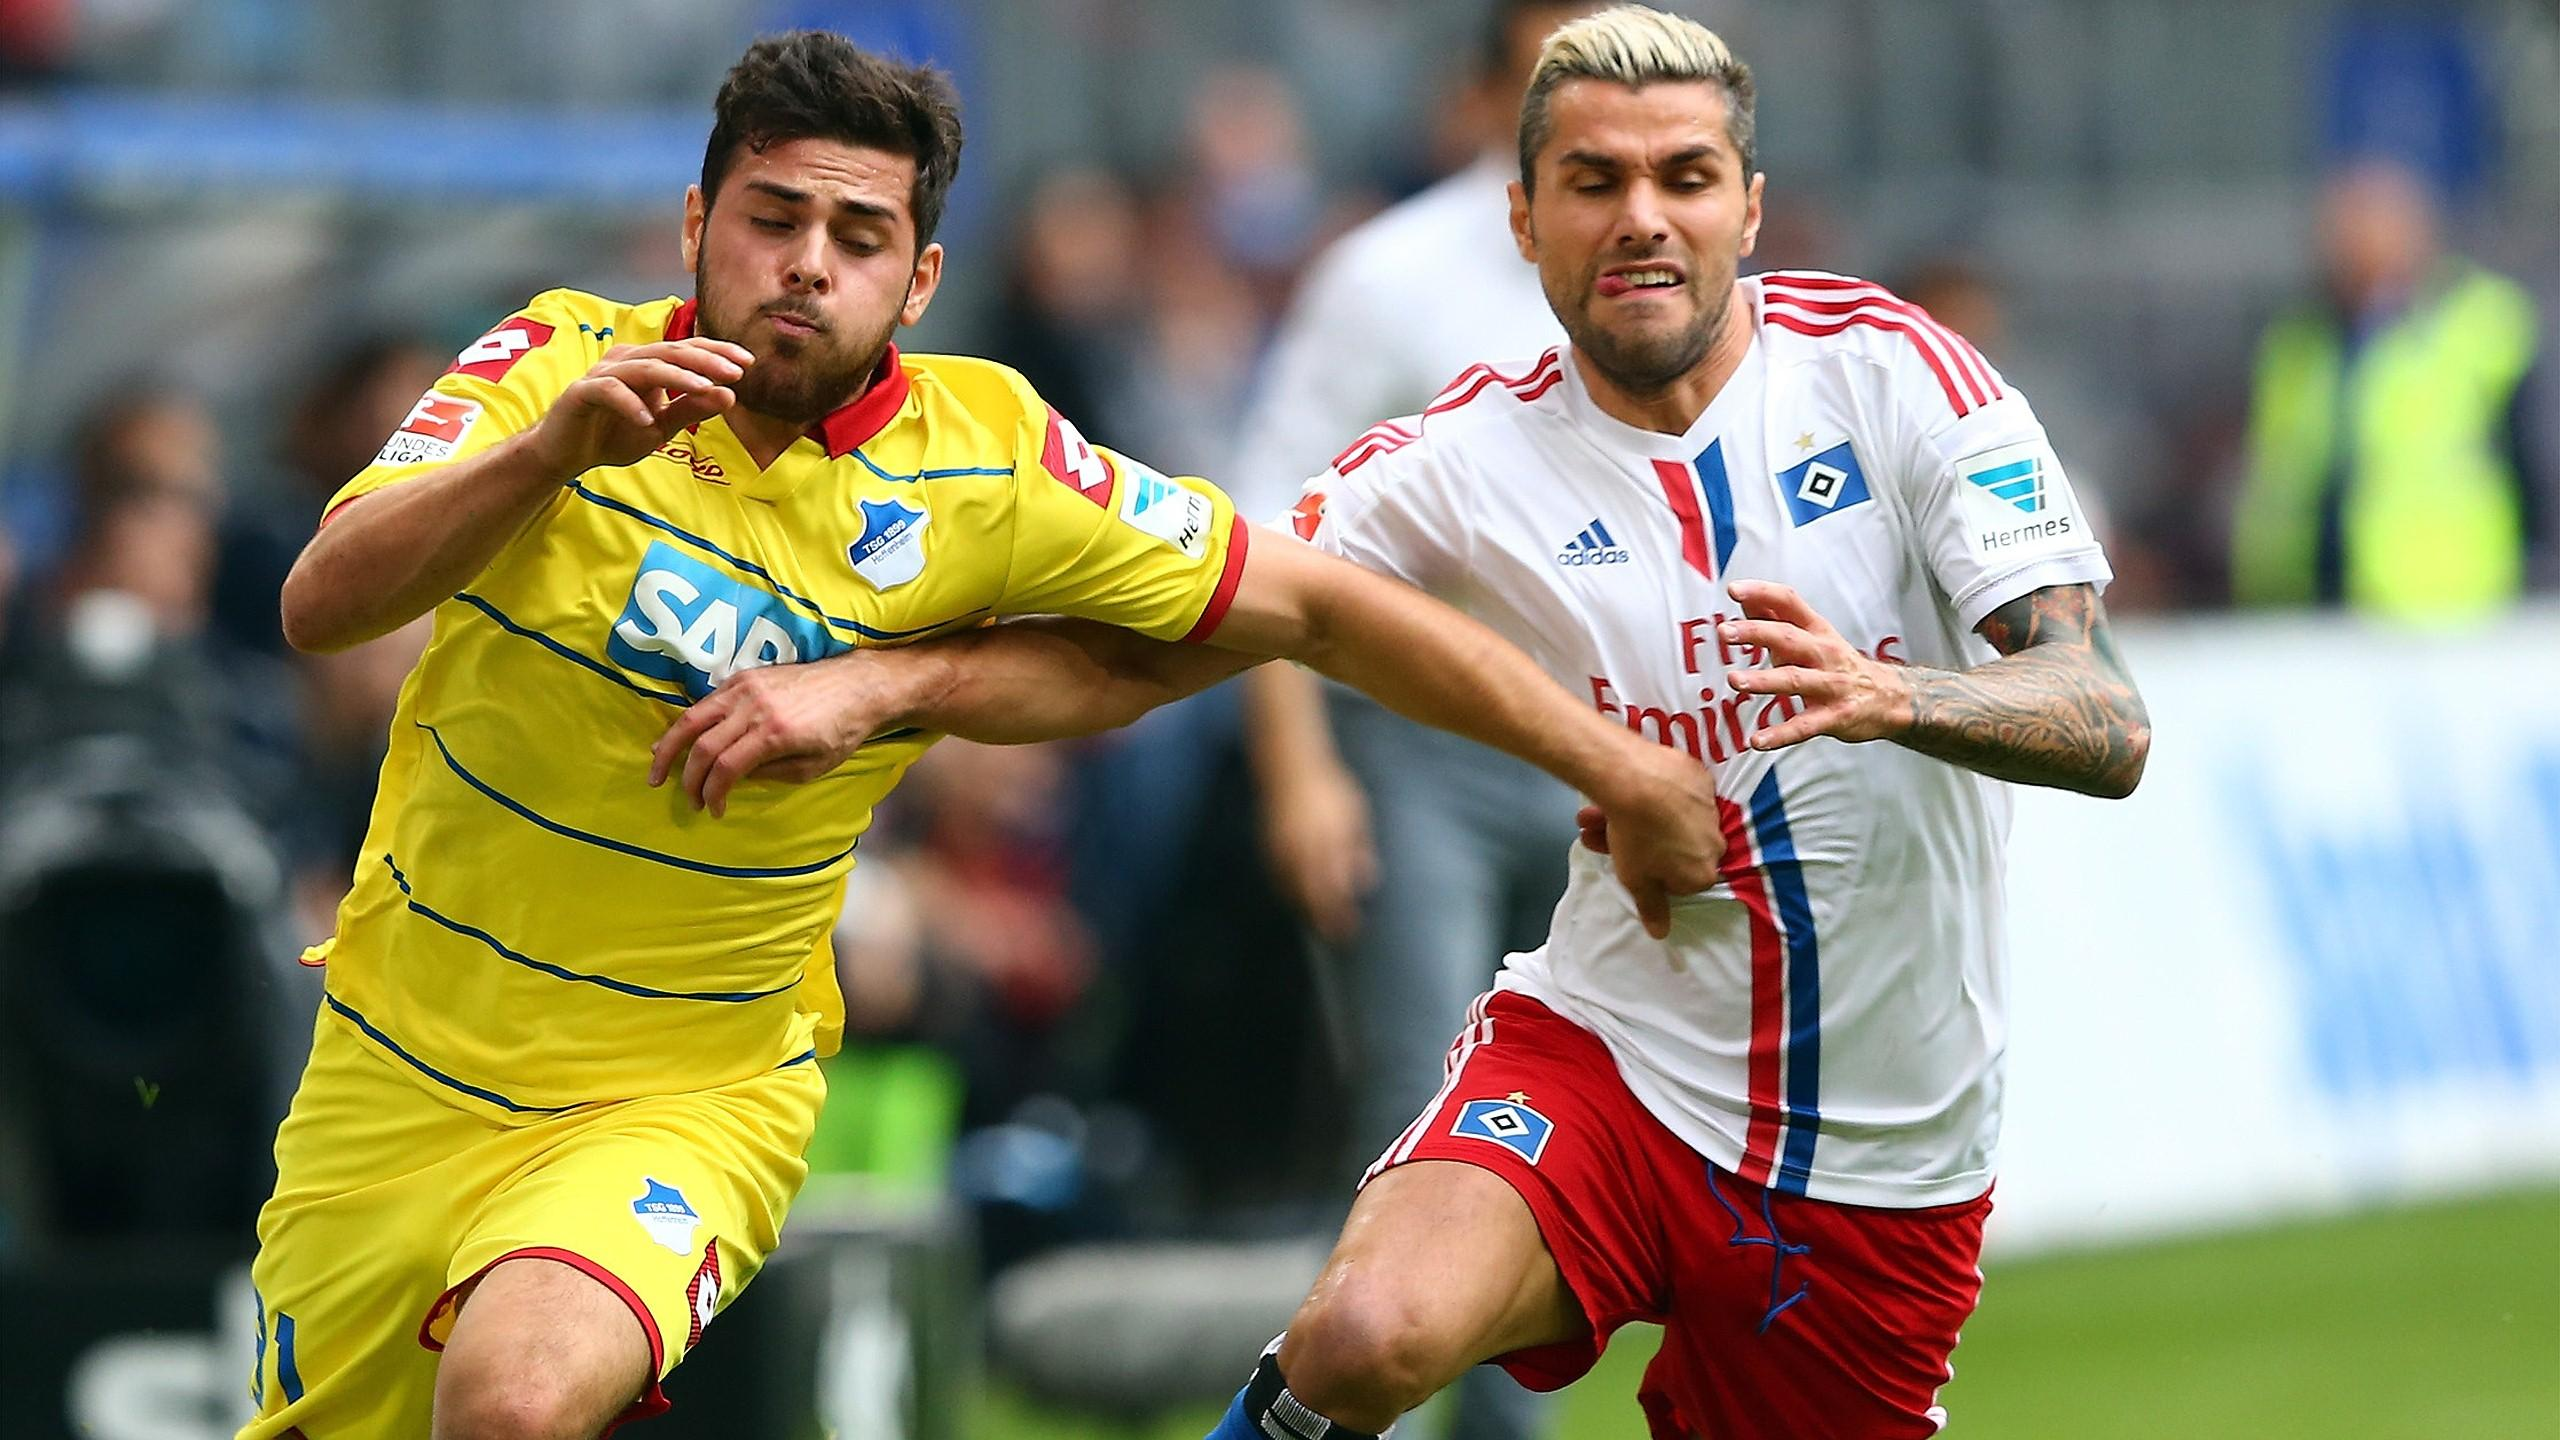 Video: Hamburger SV vs Hoffenheim